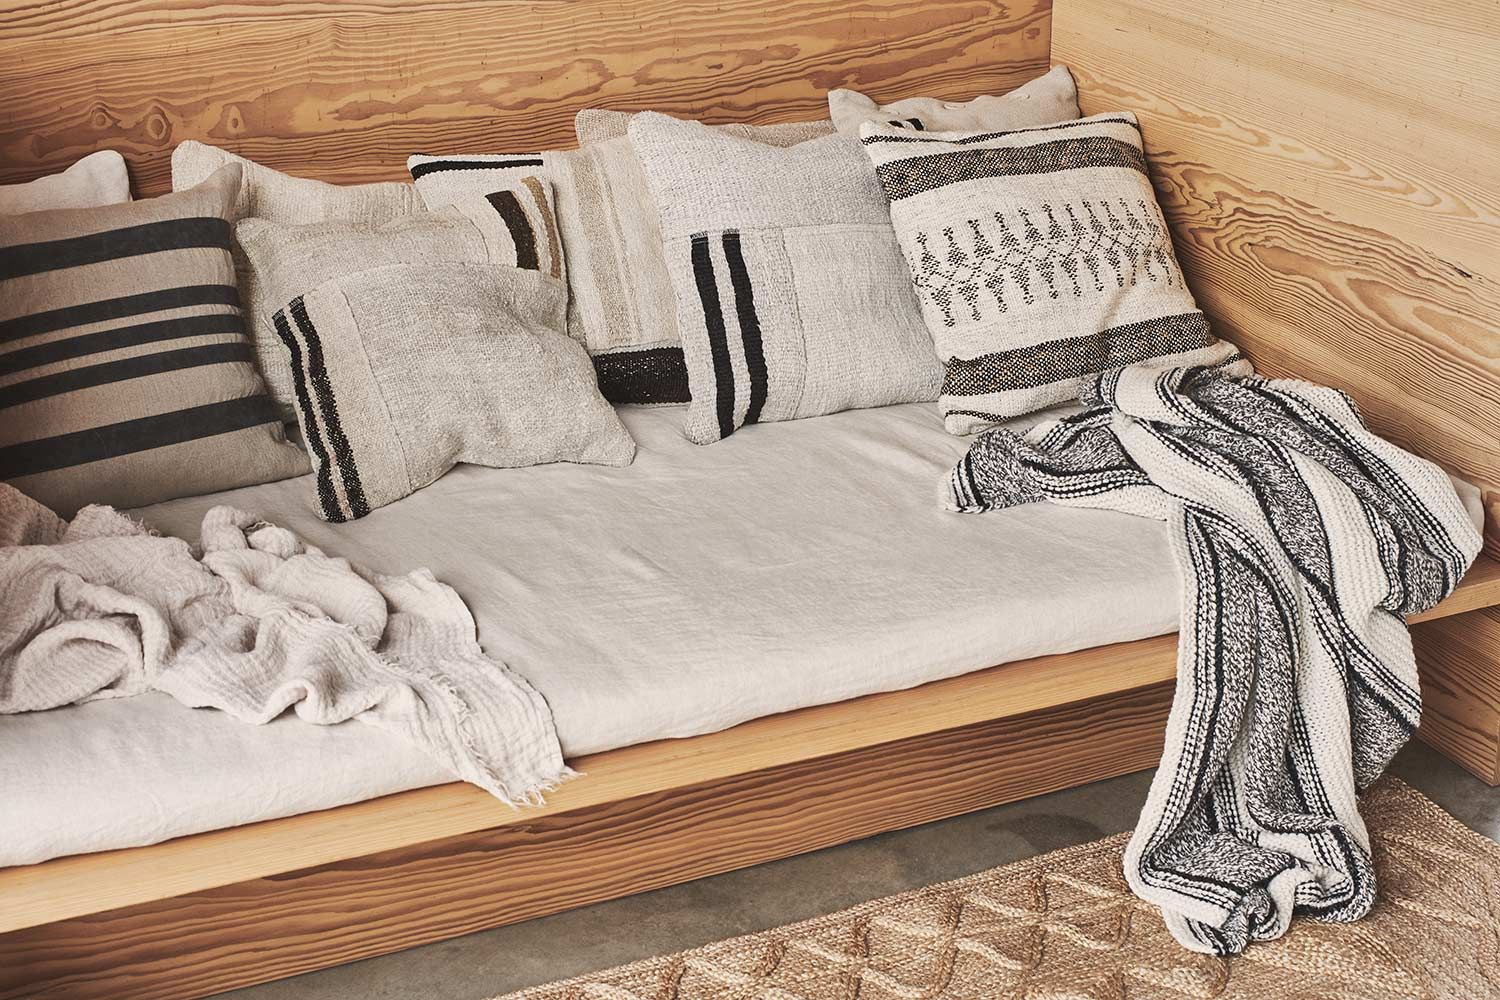 Zara Home | home : living and dining | Home decor furniture ... Zara Home Furniture Online on zara clothing online, design your own home online, zara uk online, zara handbags online, game online, zara boots online, home goods furniture online, zara outlet online, zara shoes online, ralph lauren home online,